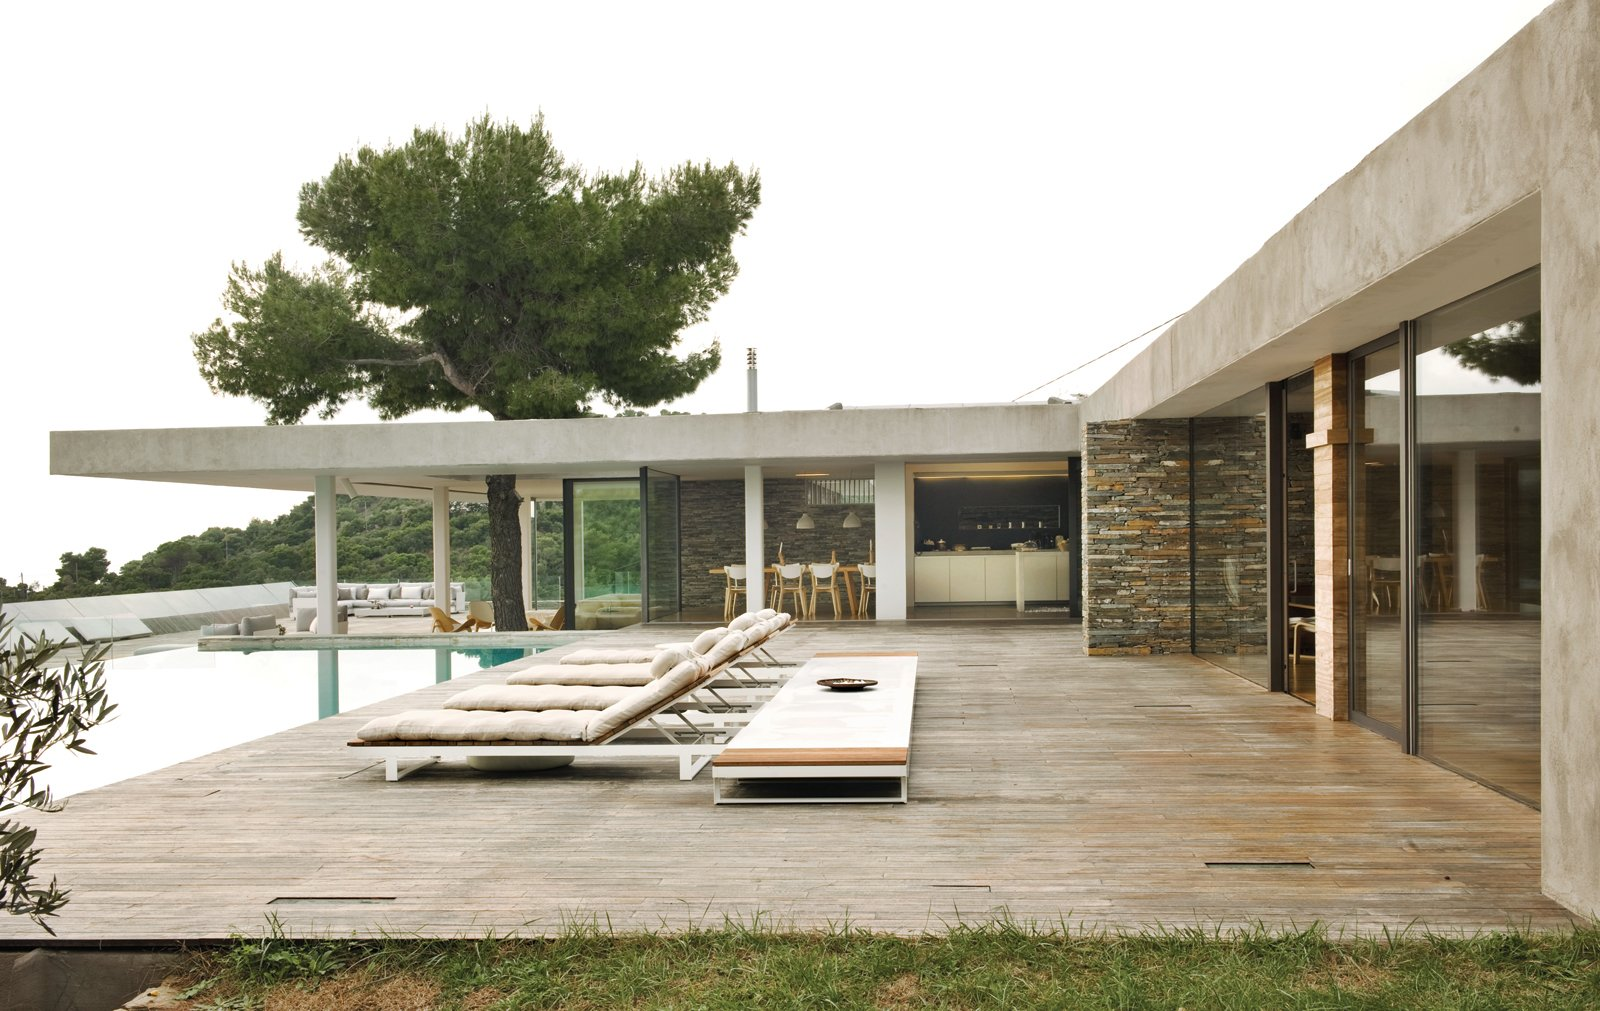 Stone walls, a pine tree exploding out of a deep overhang, iroko decking, outdoor rooms, a glassy swimming pool, and endless views of the sea make this home a paragon of indoor-outdoor living.  Photo 1 of 13 in An Idyllic Vacation Home in Greece